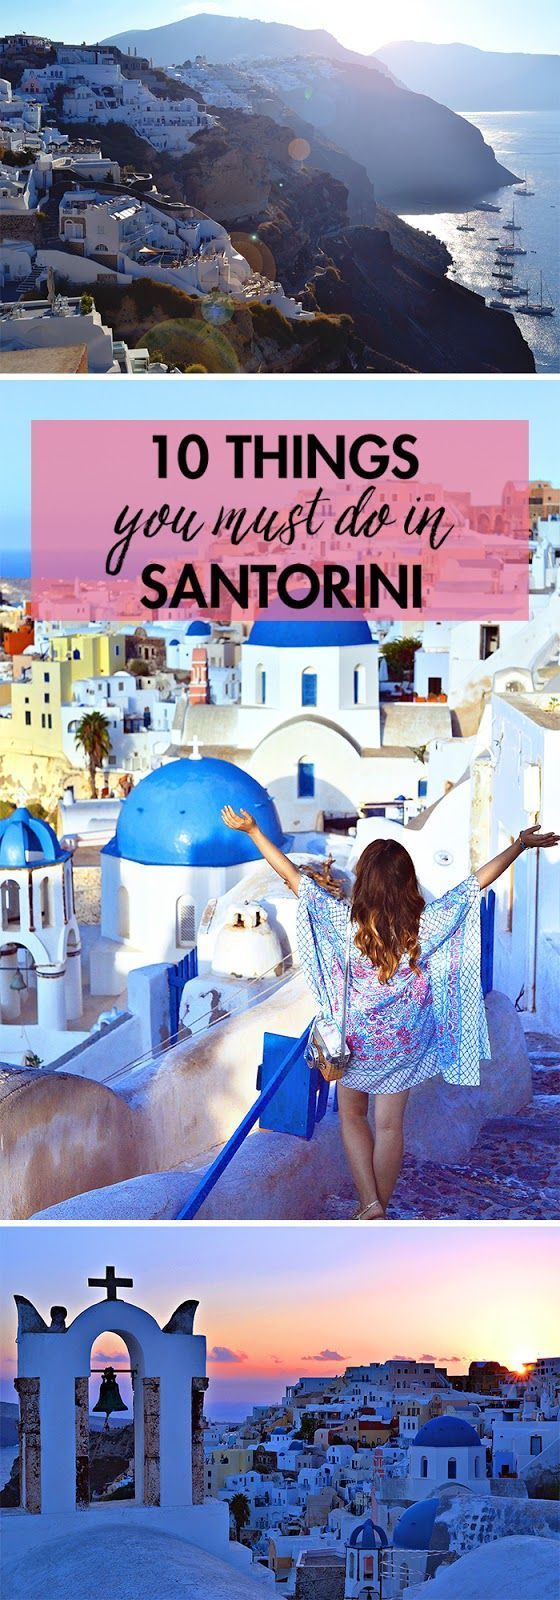 History In High Heels: 10 Things You Must Do in Santorini